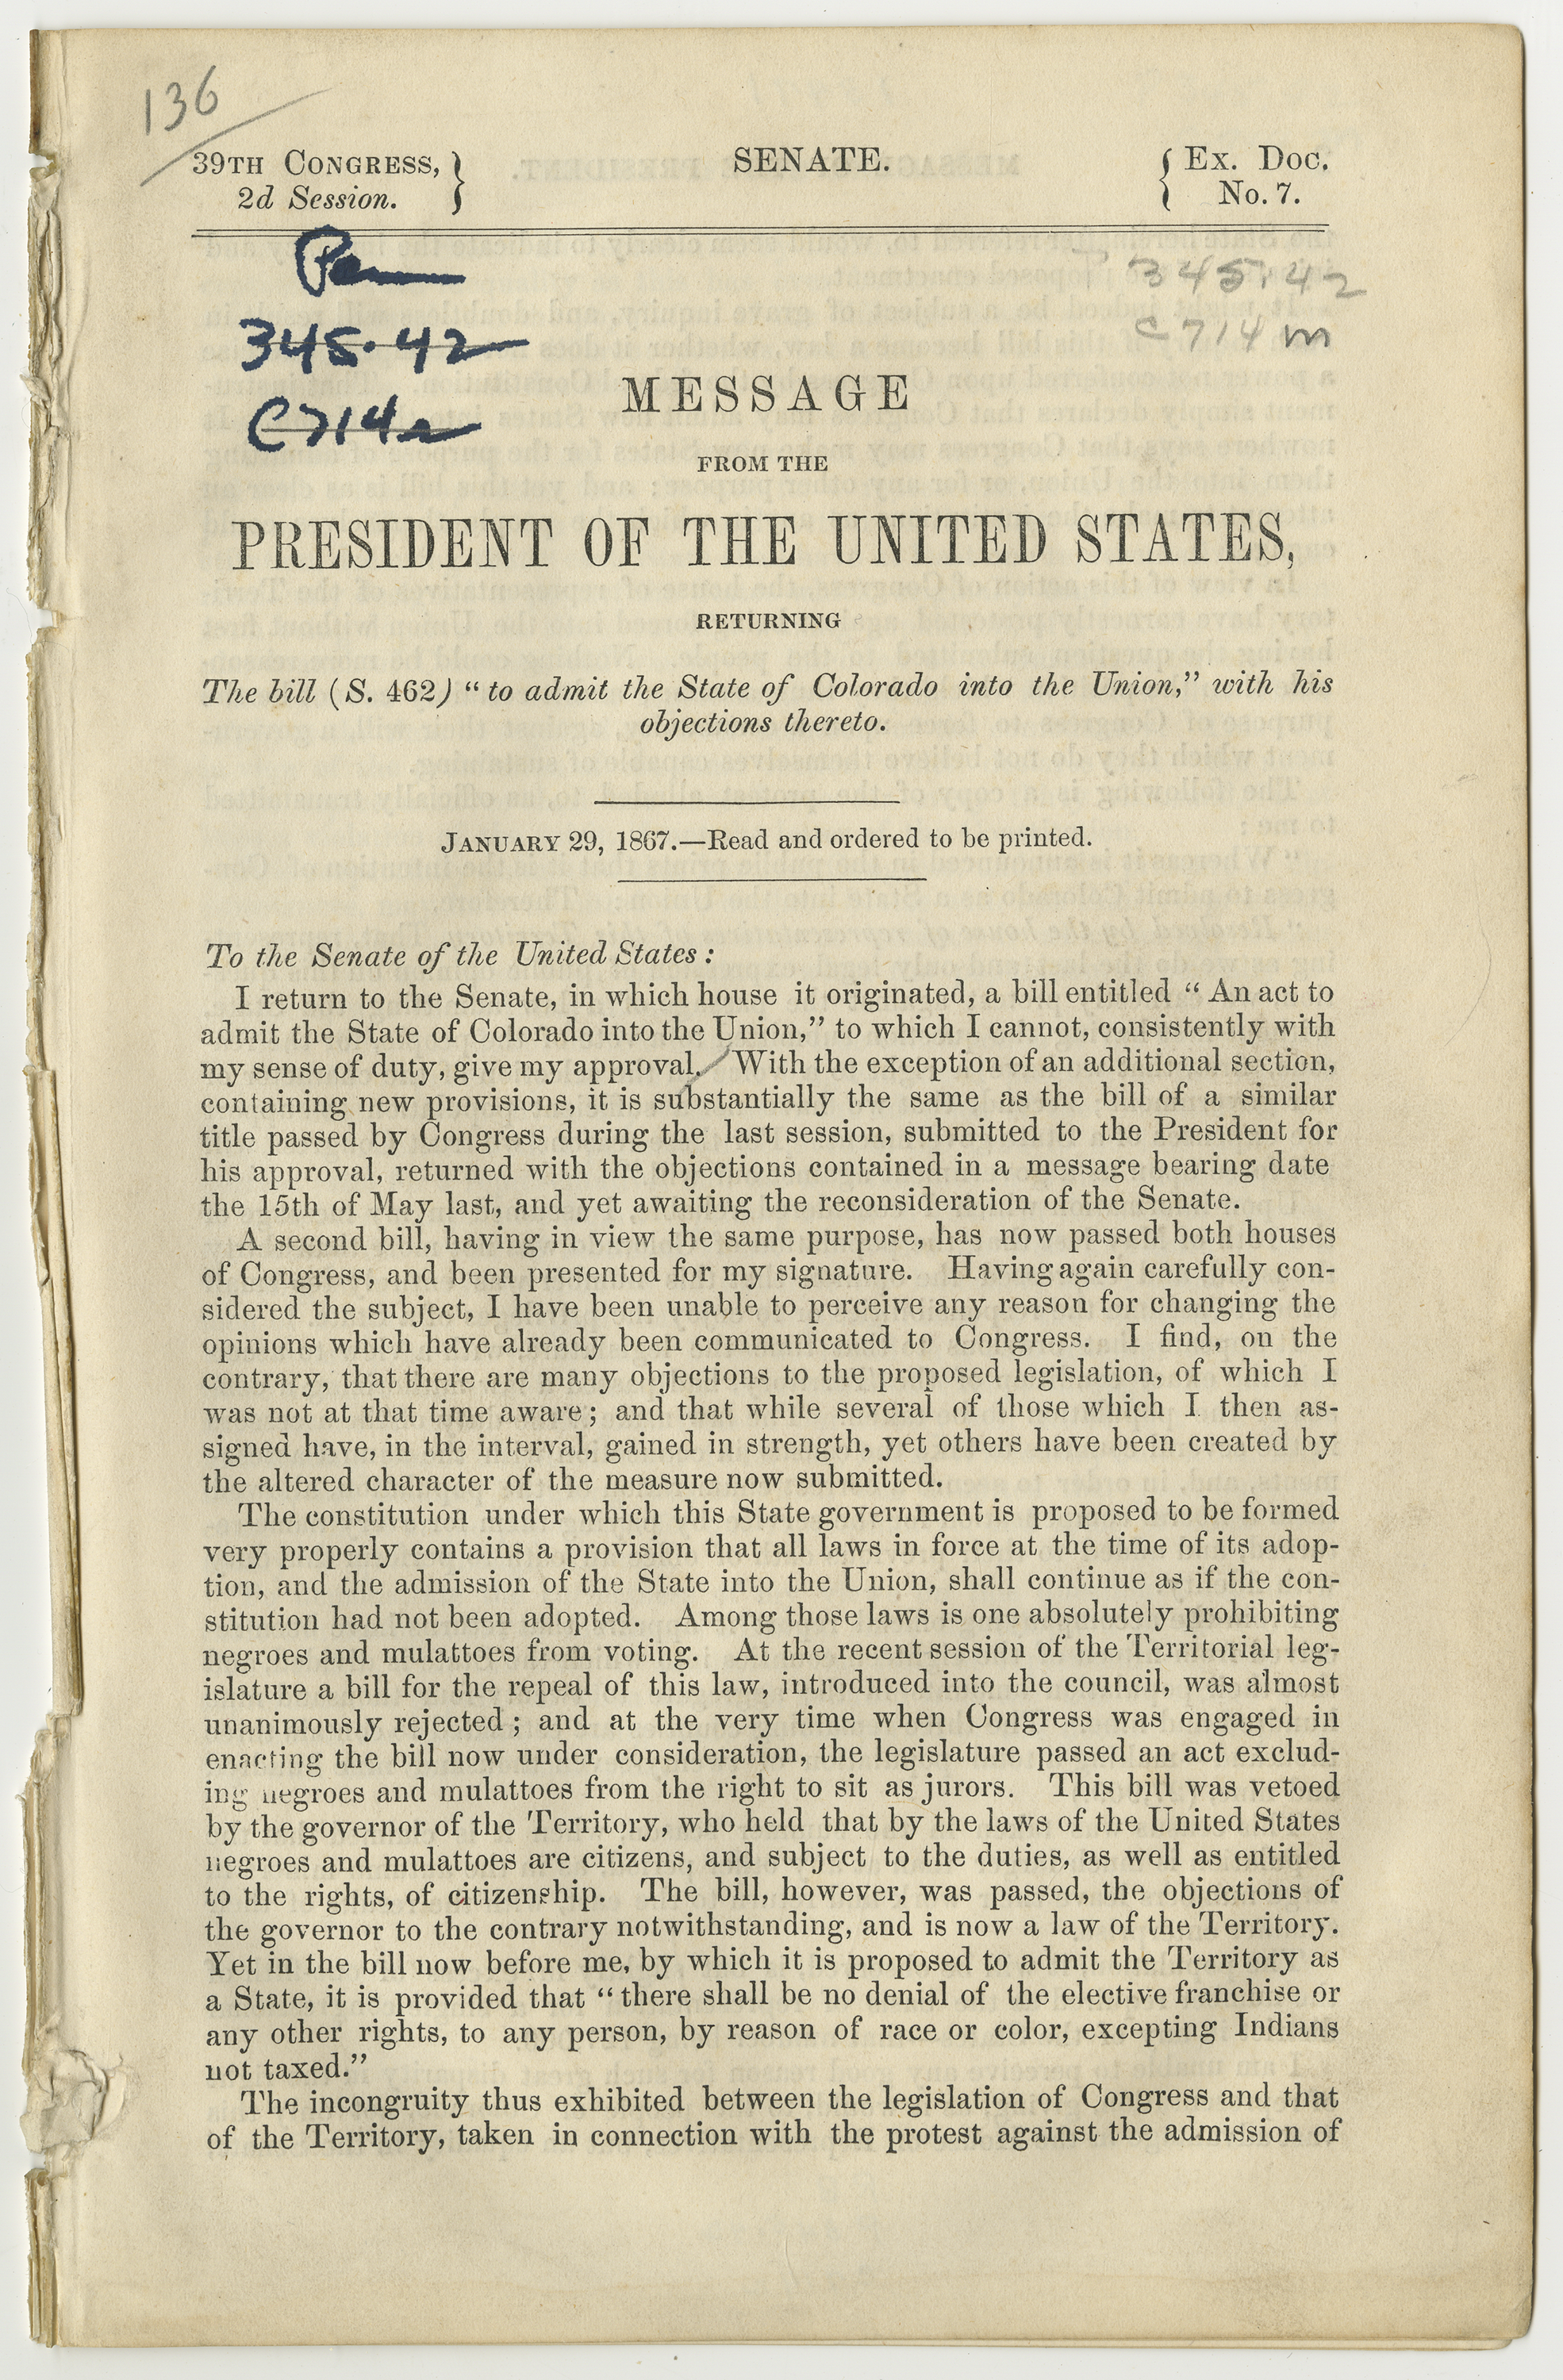 Copy of message from the President 1867